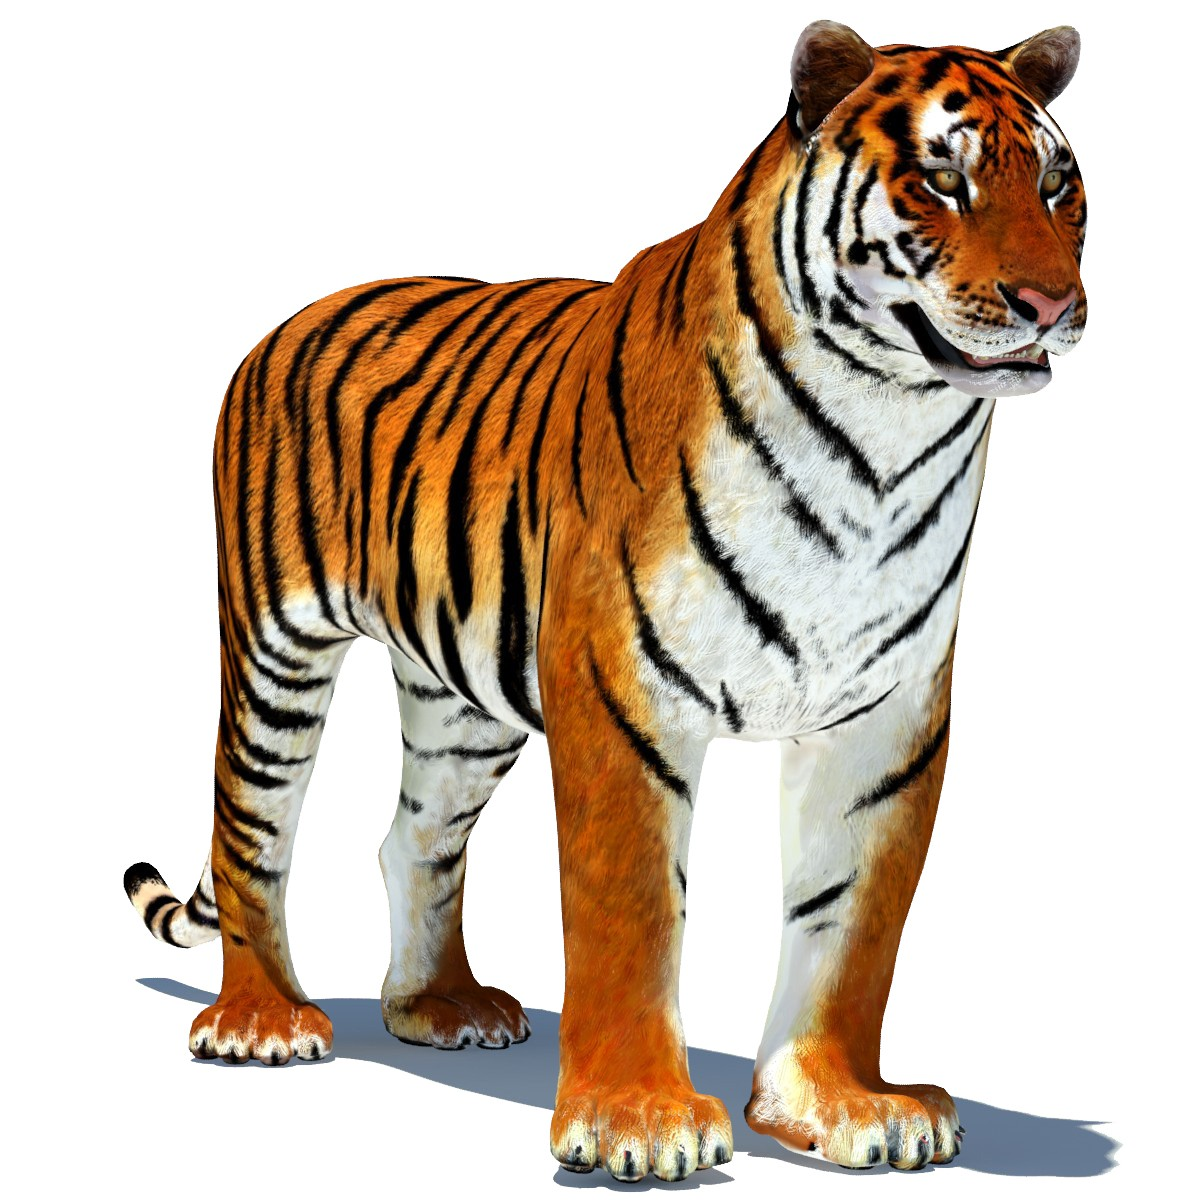 1200x1200 - Animated Tiger 24